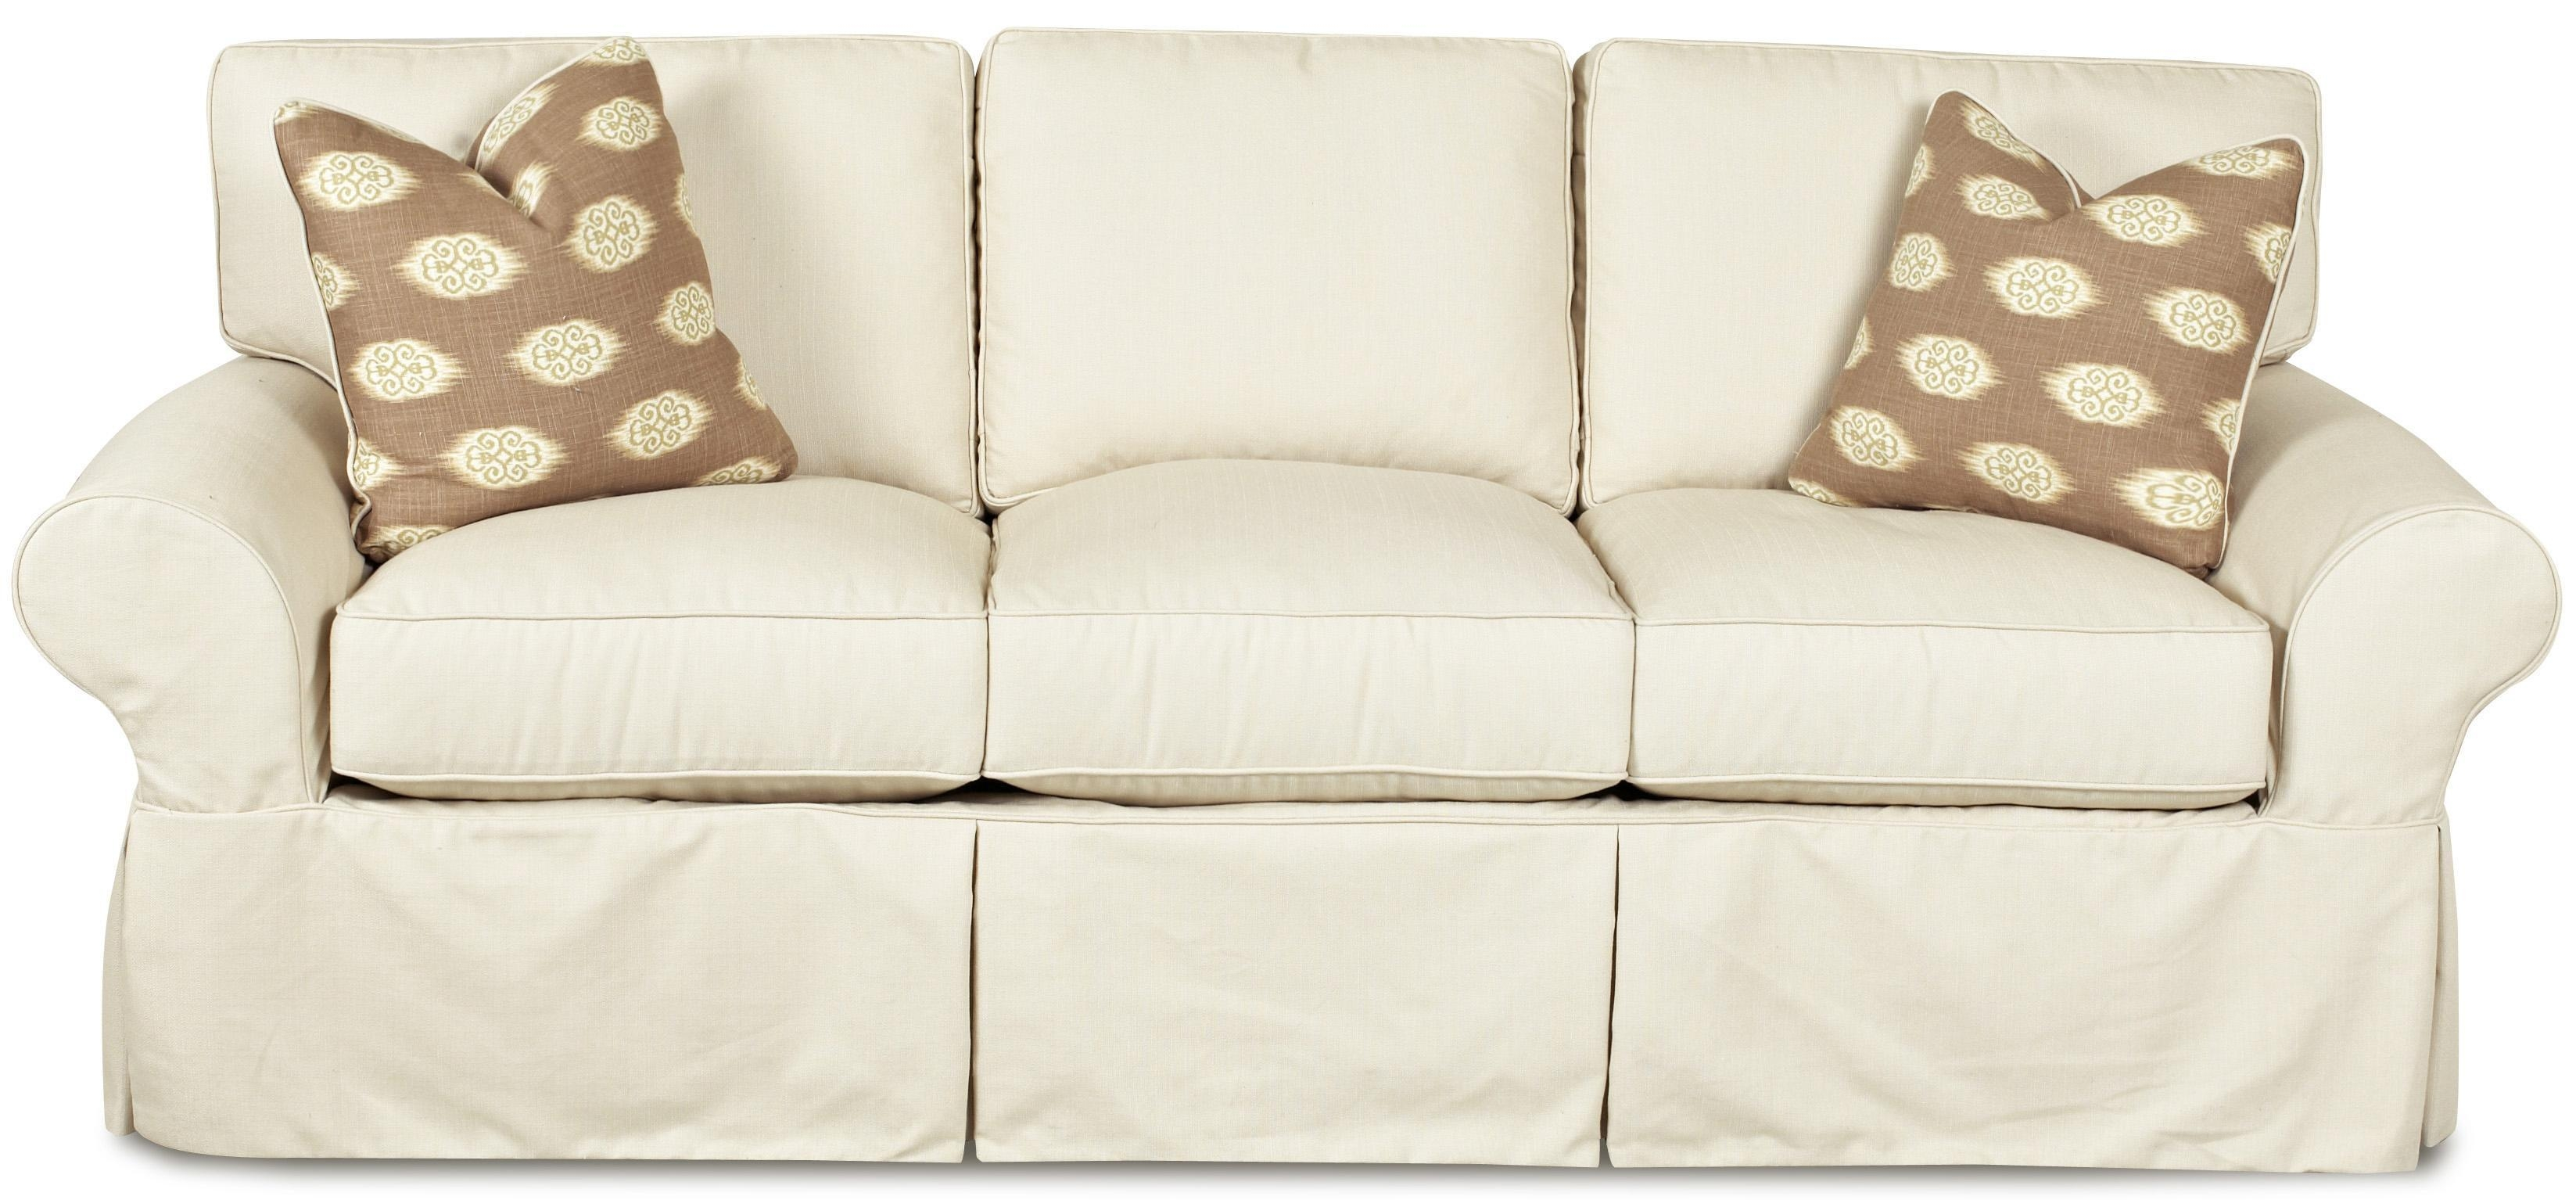 Furniture: Perfect Living Room With Sofa Slipcovers Walmart For Pertaining To Walmart Slipcovers For Sofas (Image 8 of 20)